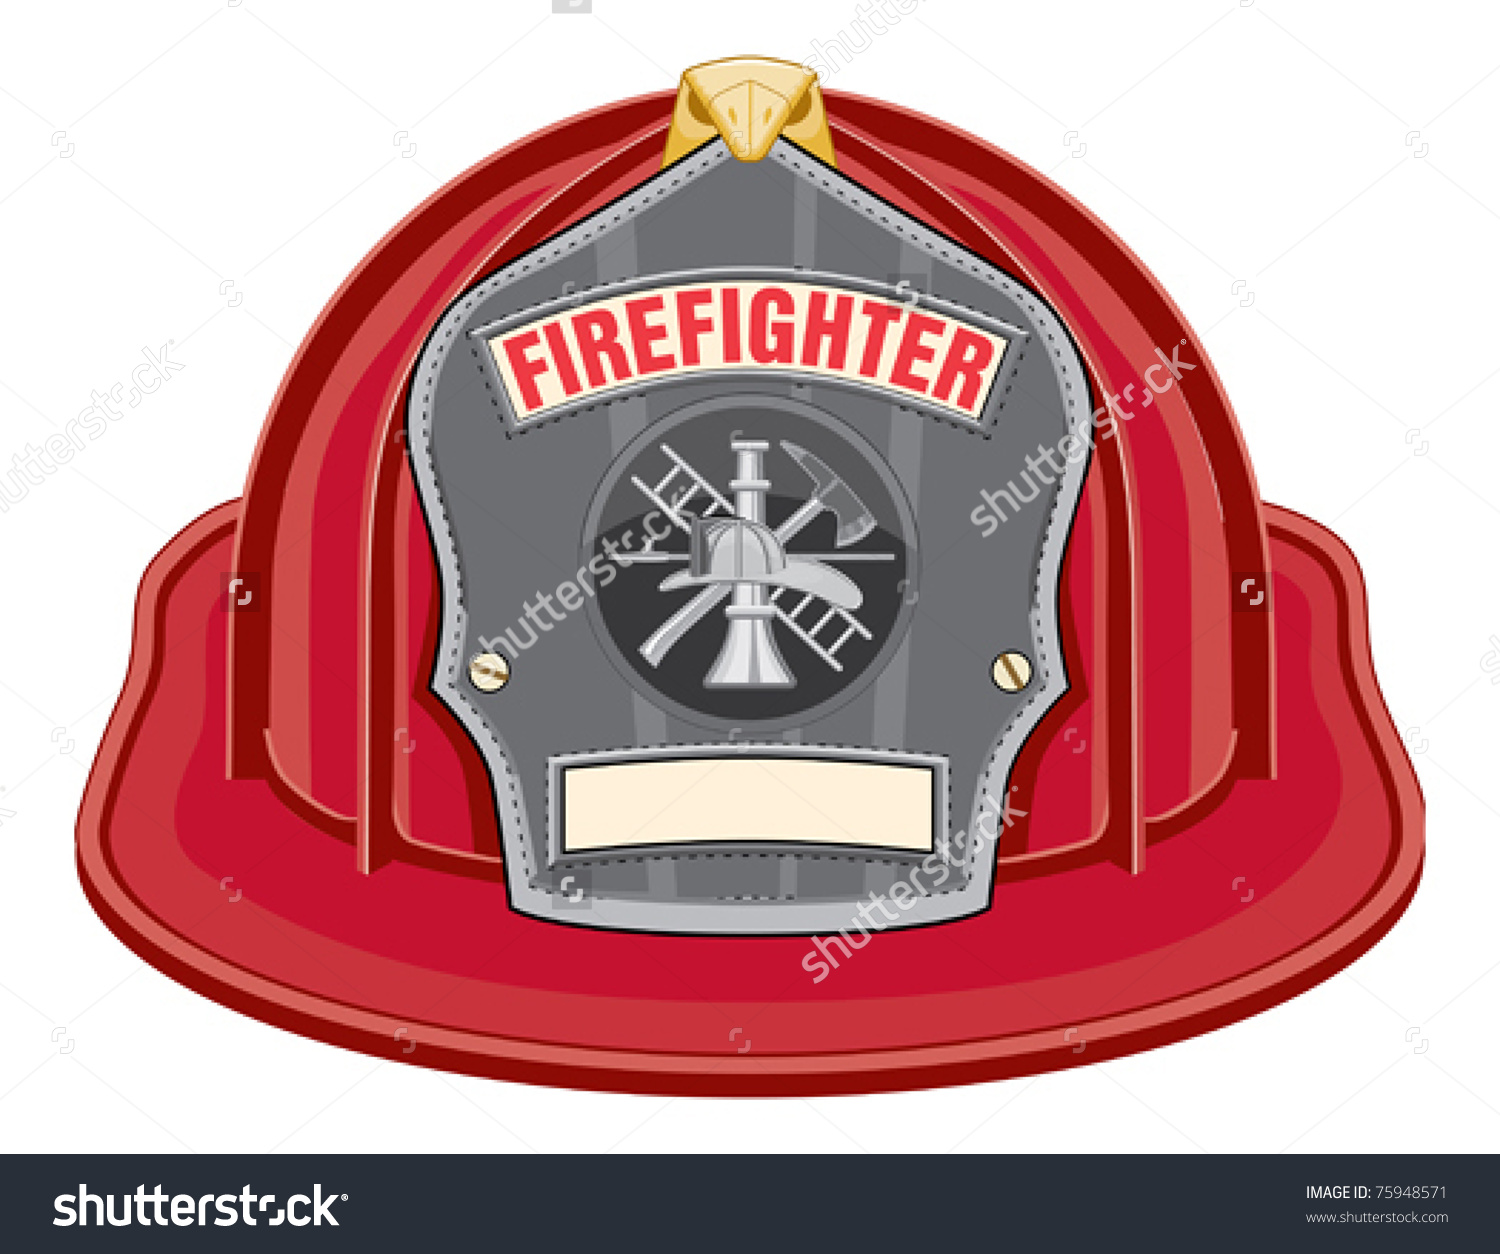 Firefighter Clip Art. Firefighter Helmet Black Is An ..